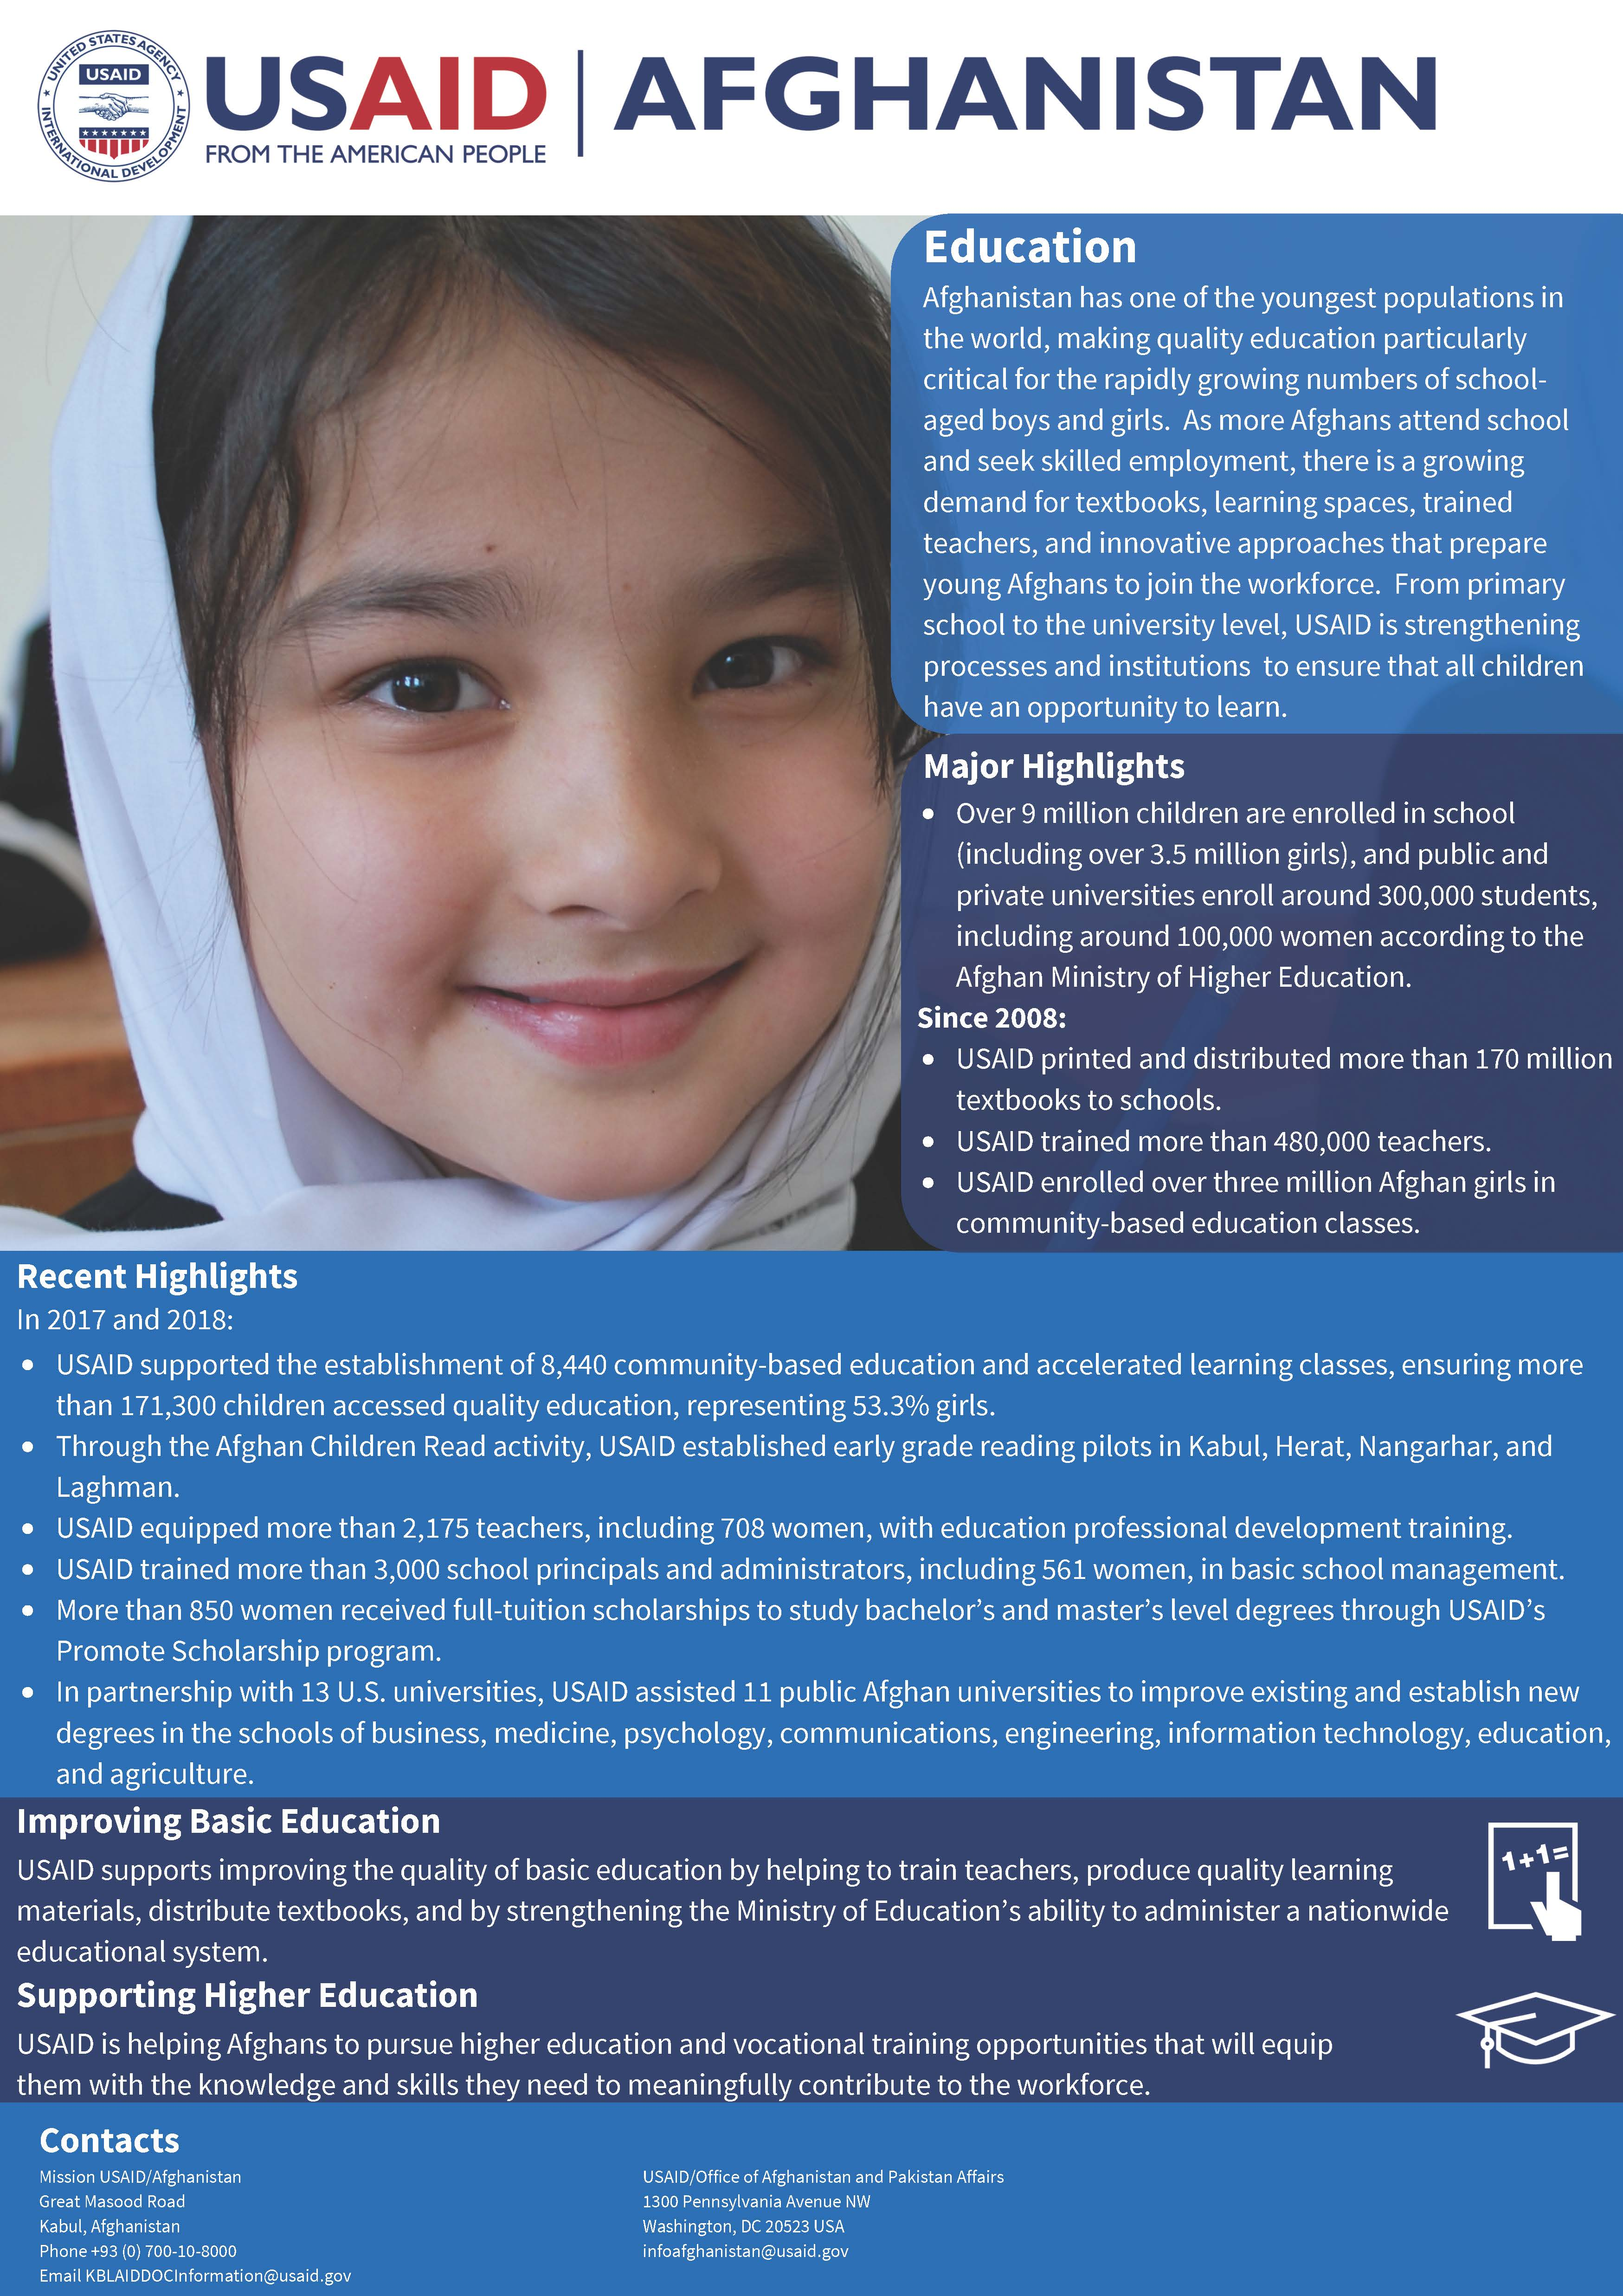 USAID Afghanistan Education Fact Sheet